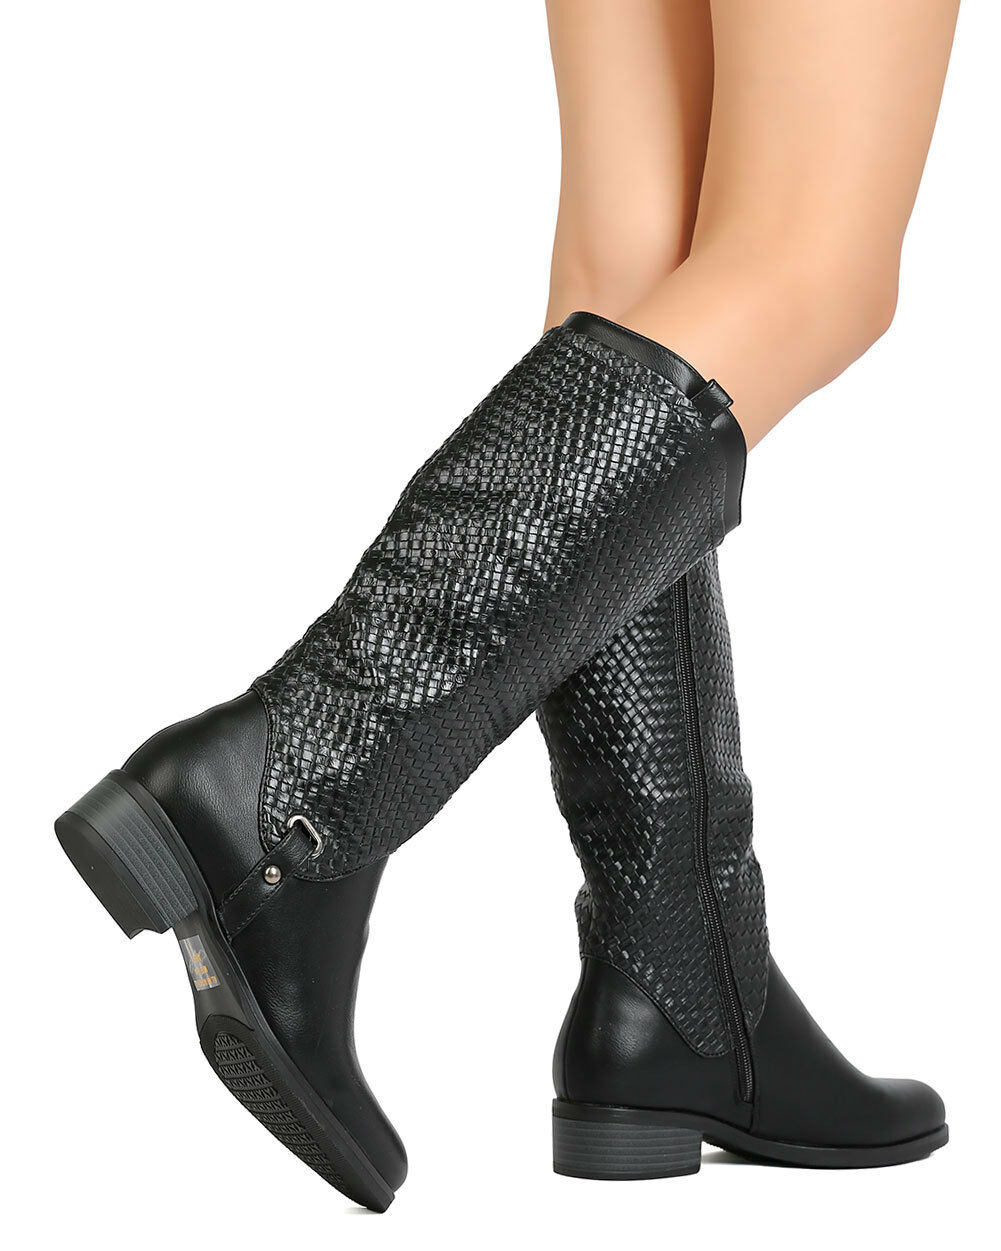 New Women Betani Amber-11 Leatherette Knee High Basket Weave Riding Boot Boot Riding b7d9f8